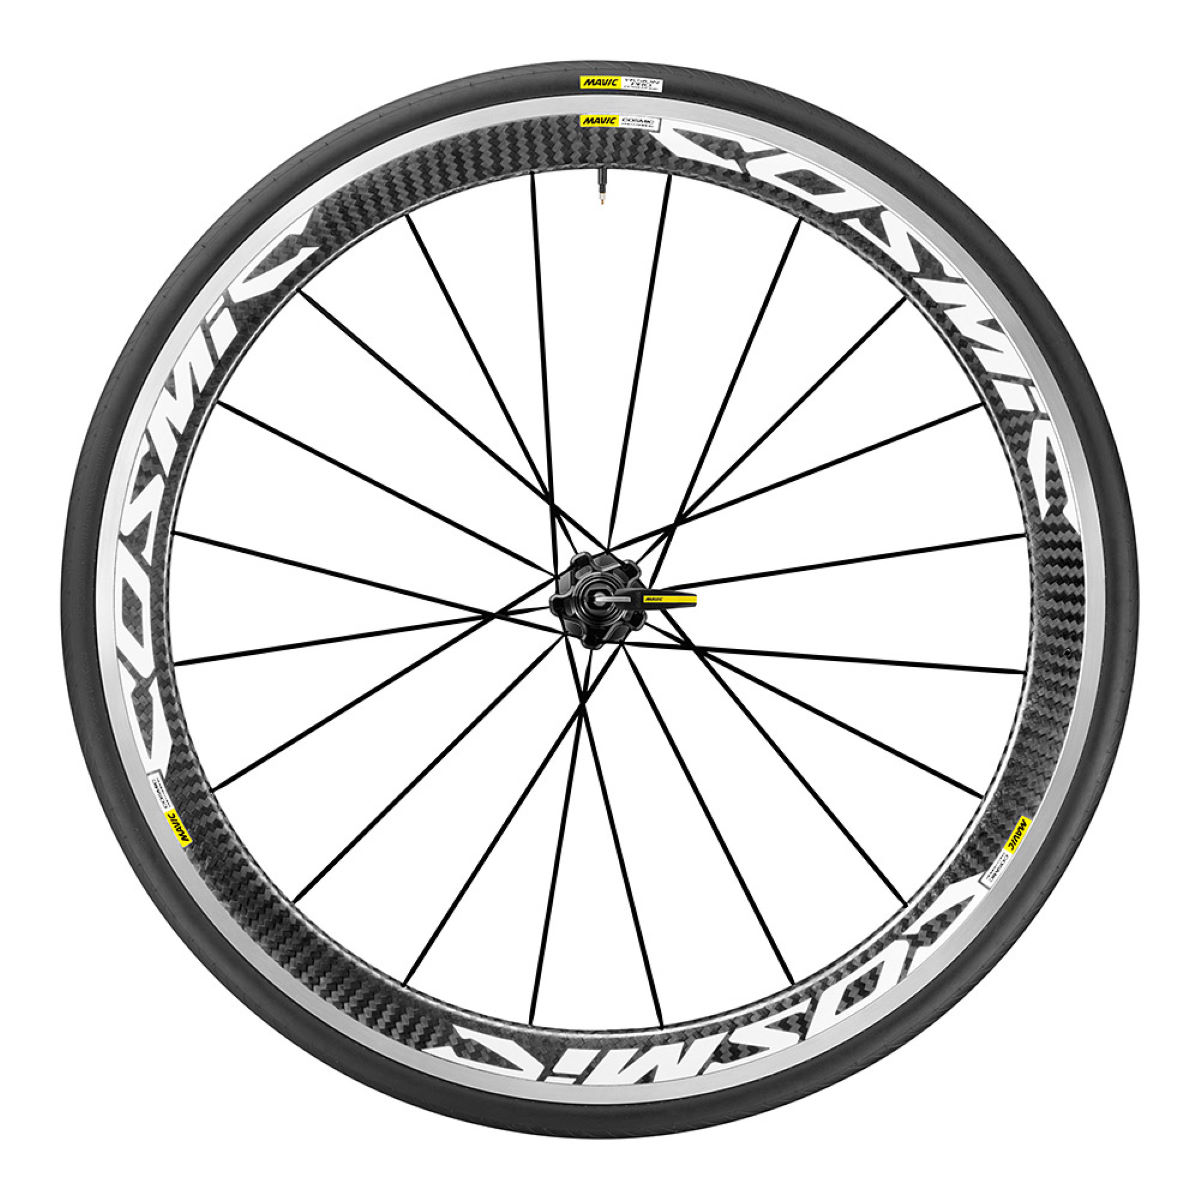 Mavic Cosmic Pro Carbon rear wheel (with cover) - Competition wheels